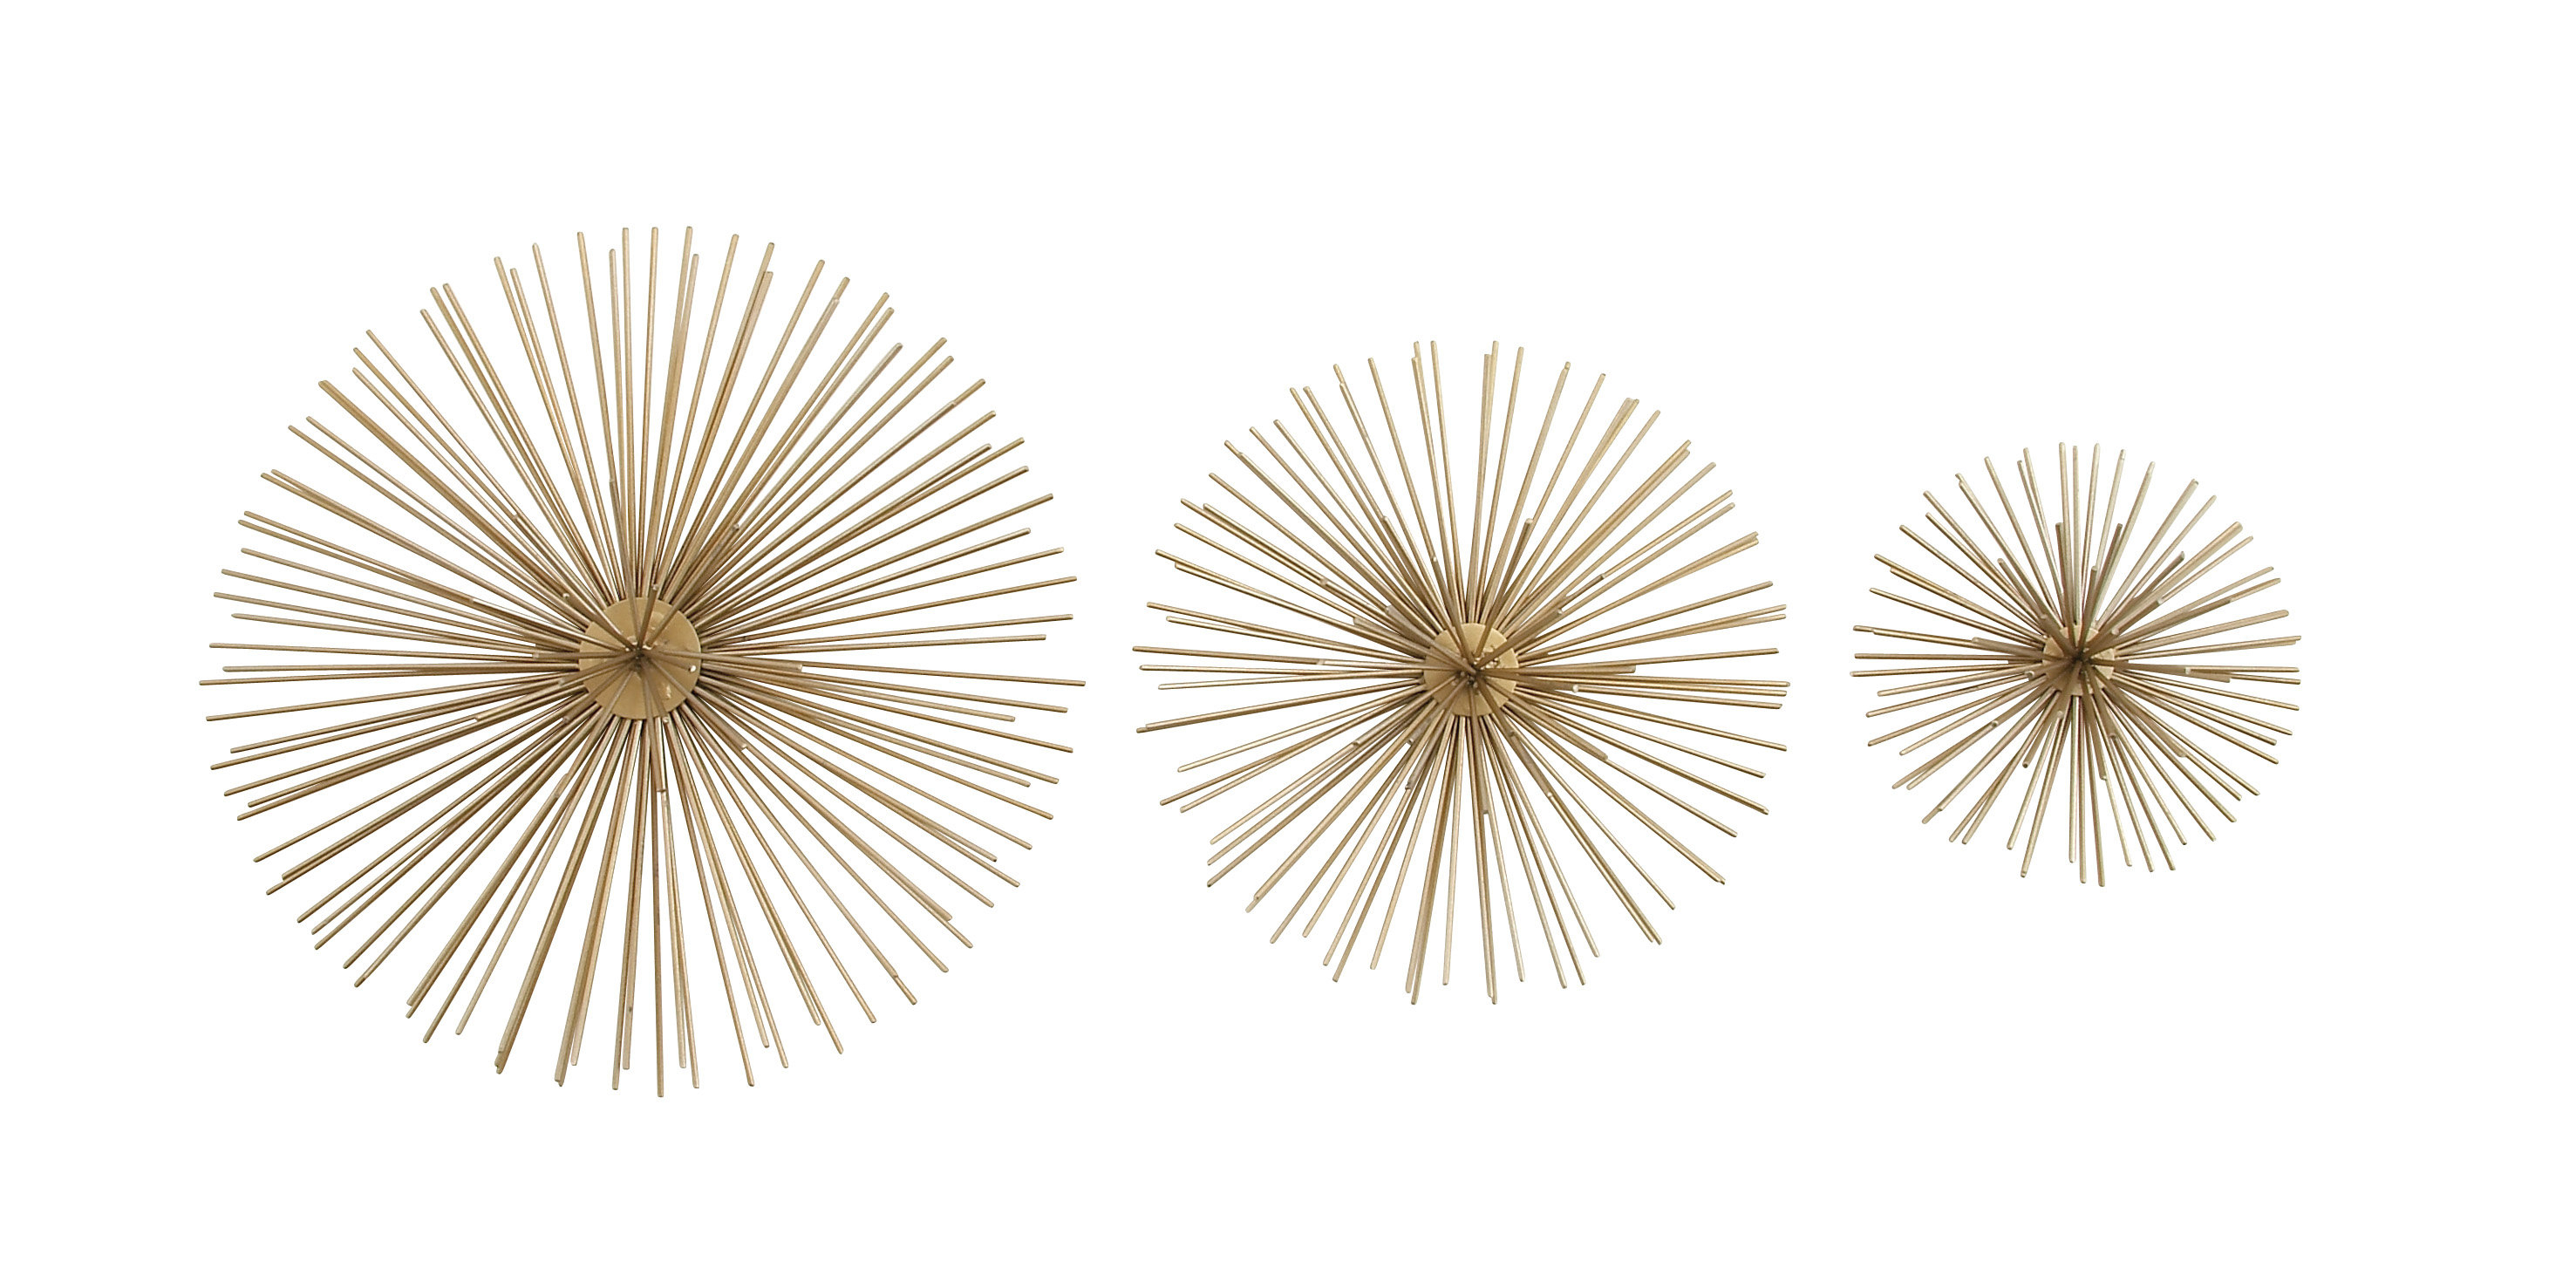 3 Piece Star Wall Decor Set with Set of 3 Contemporary 6, 9, and 11 Inch Gold Tin Starburst Sculptures (Image 3 of 30)